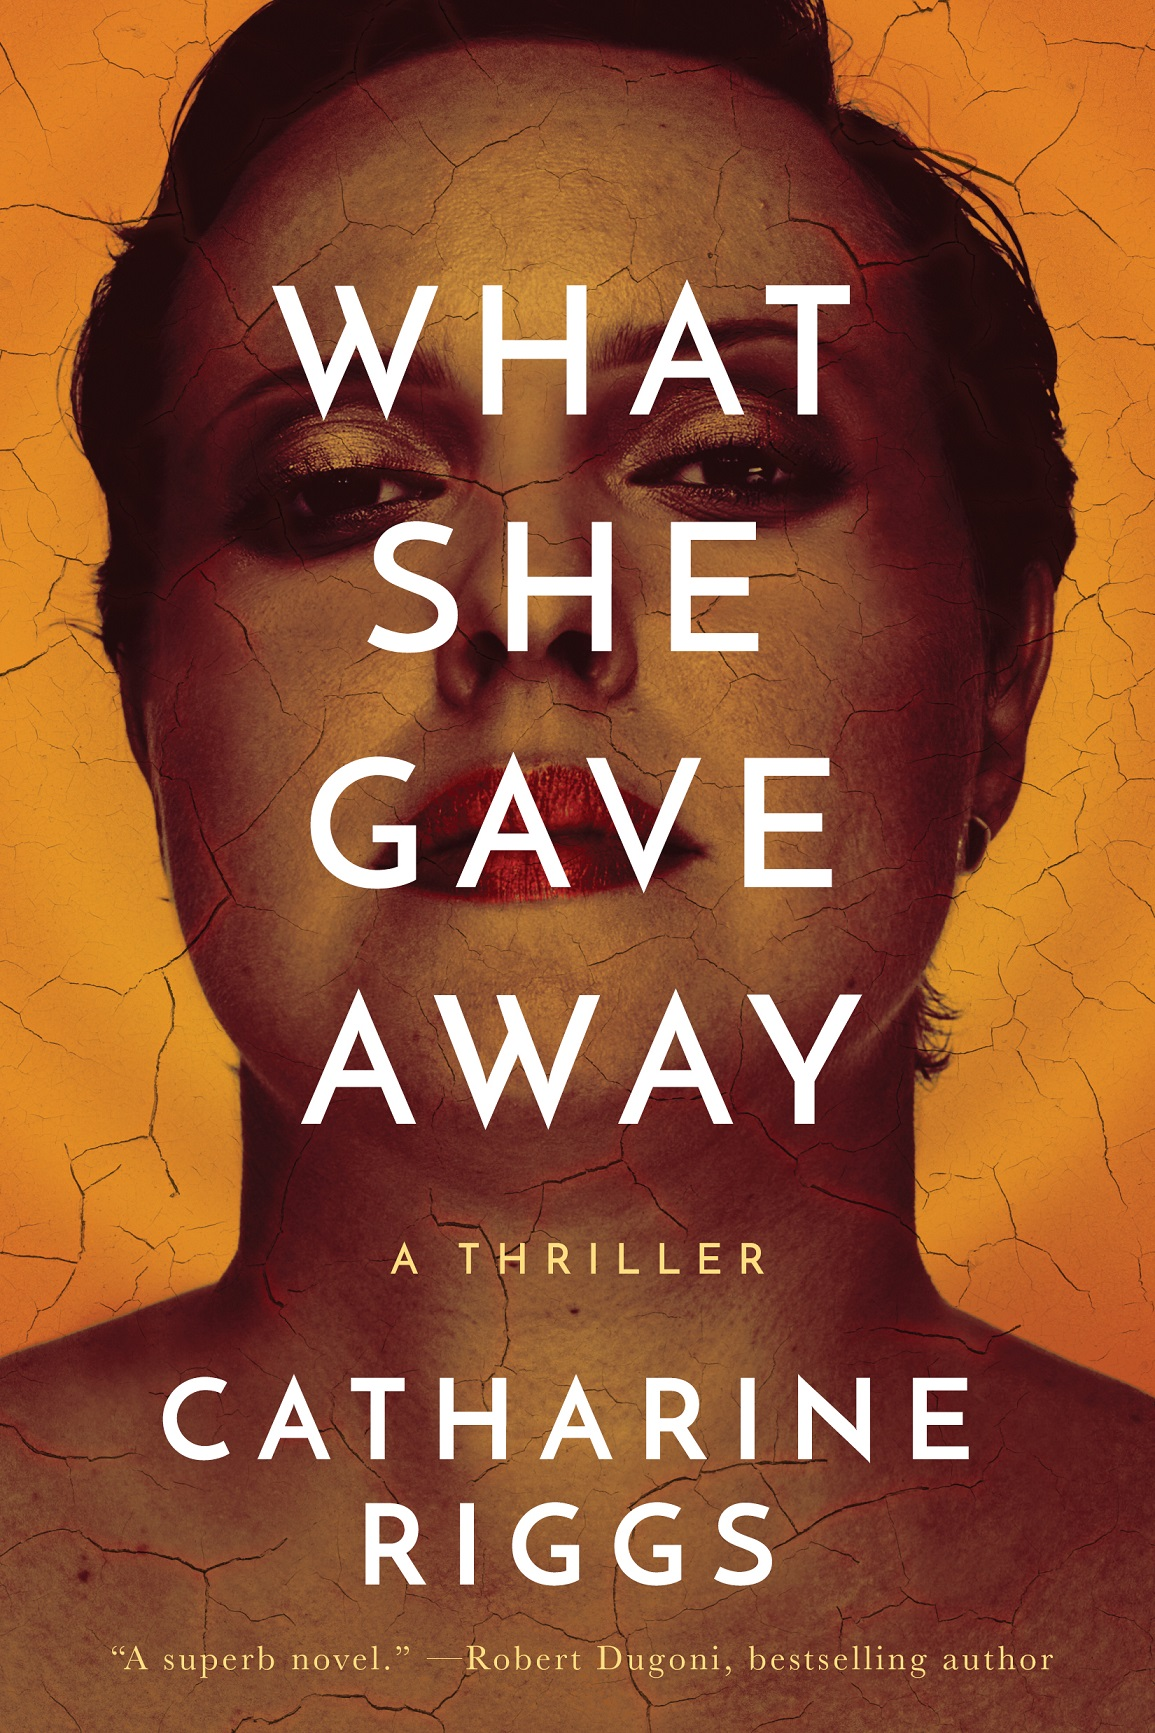 Thriller Book Launch Benefit on September 27 – What She Gave Away by Catharine Riggs